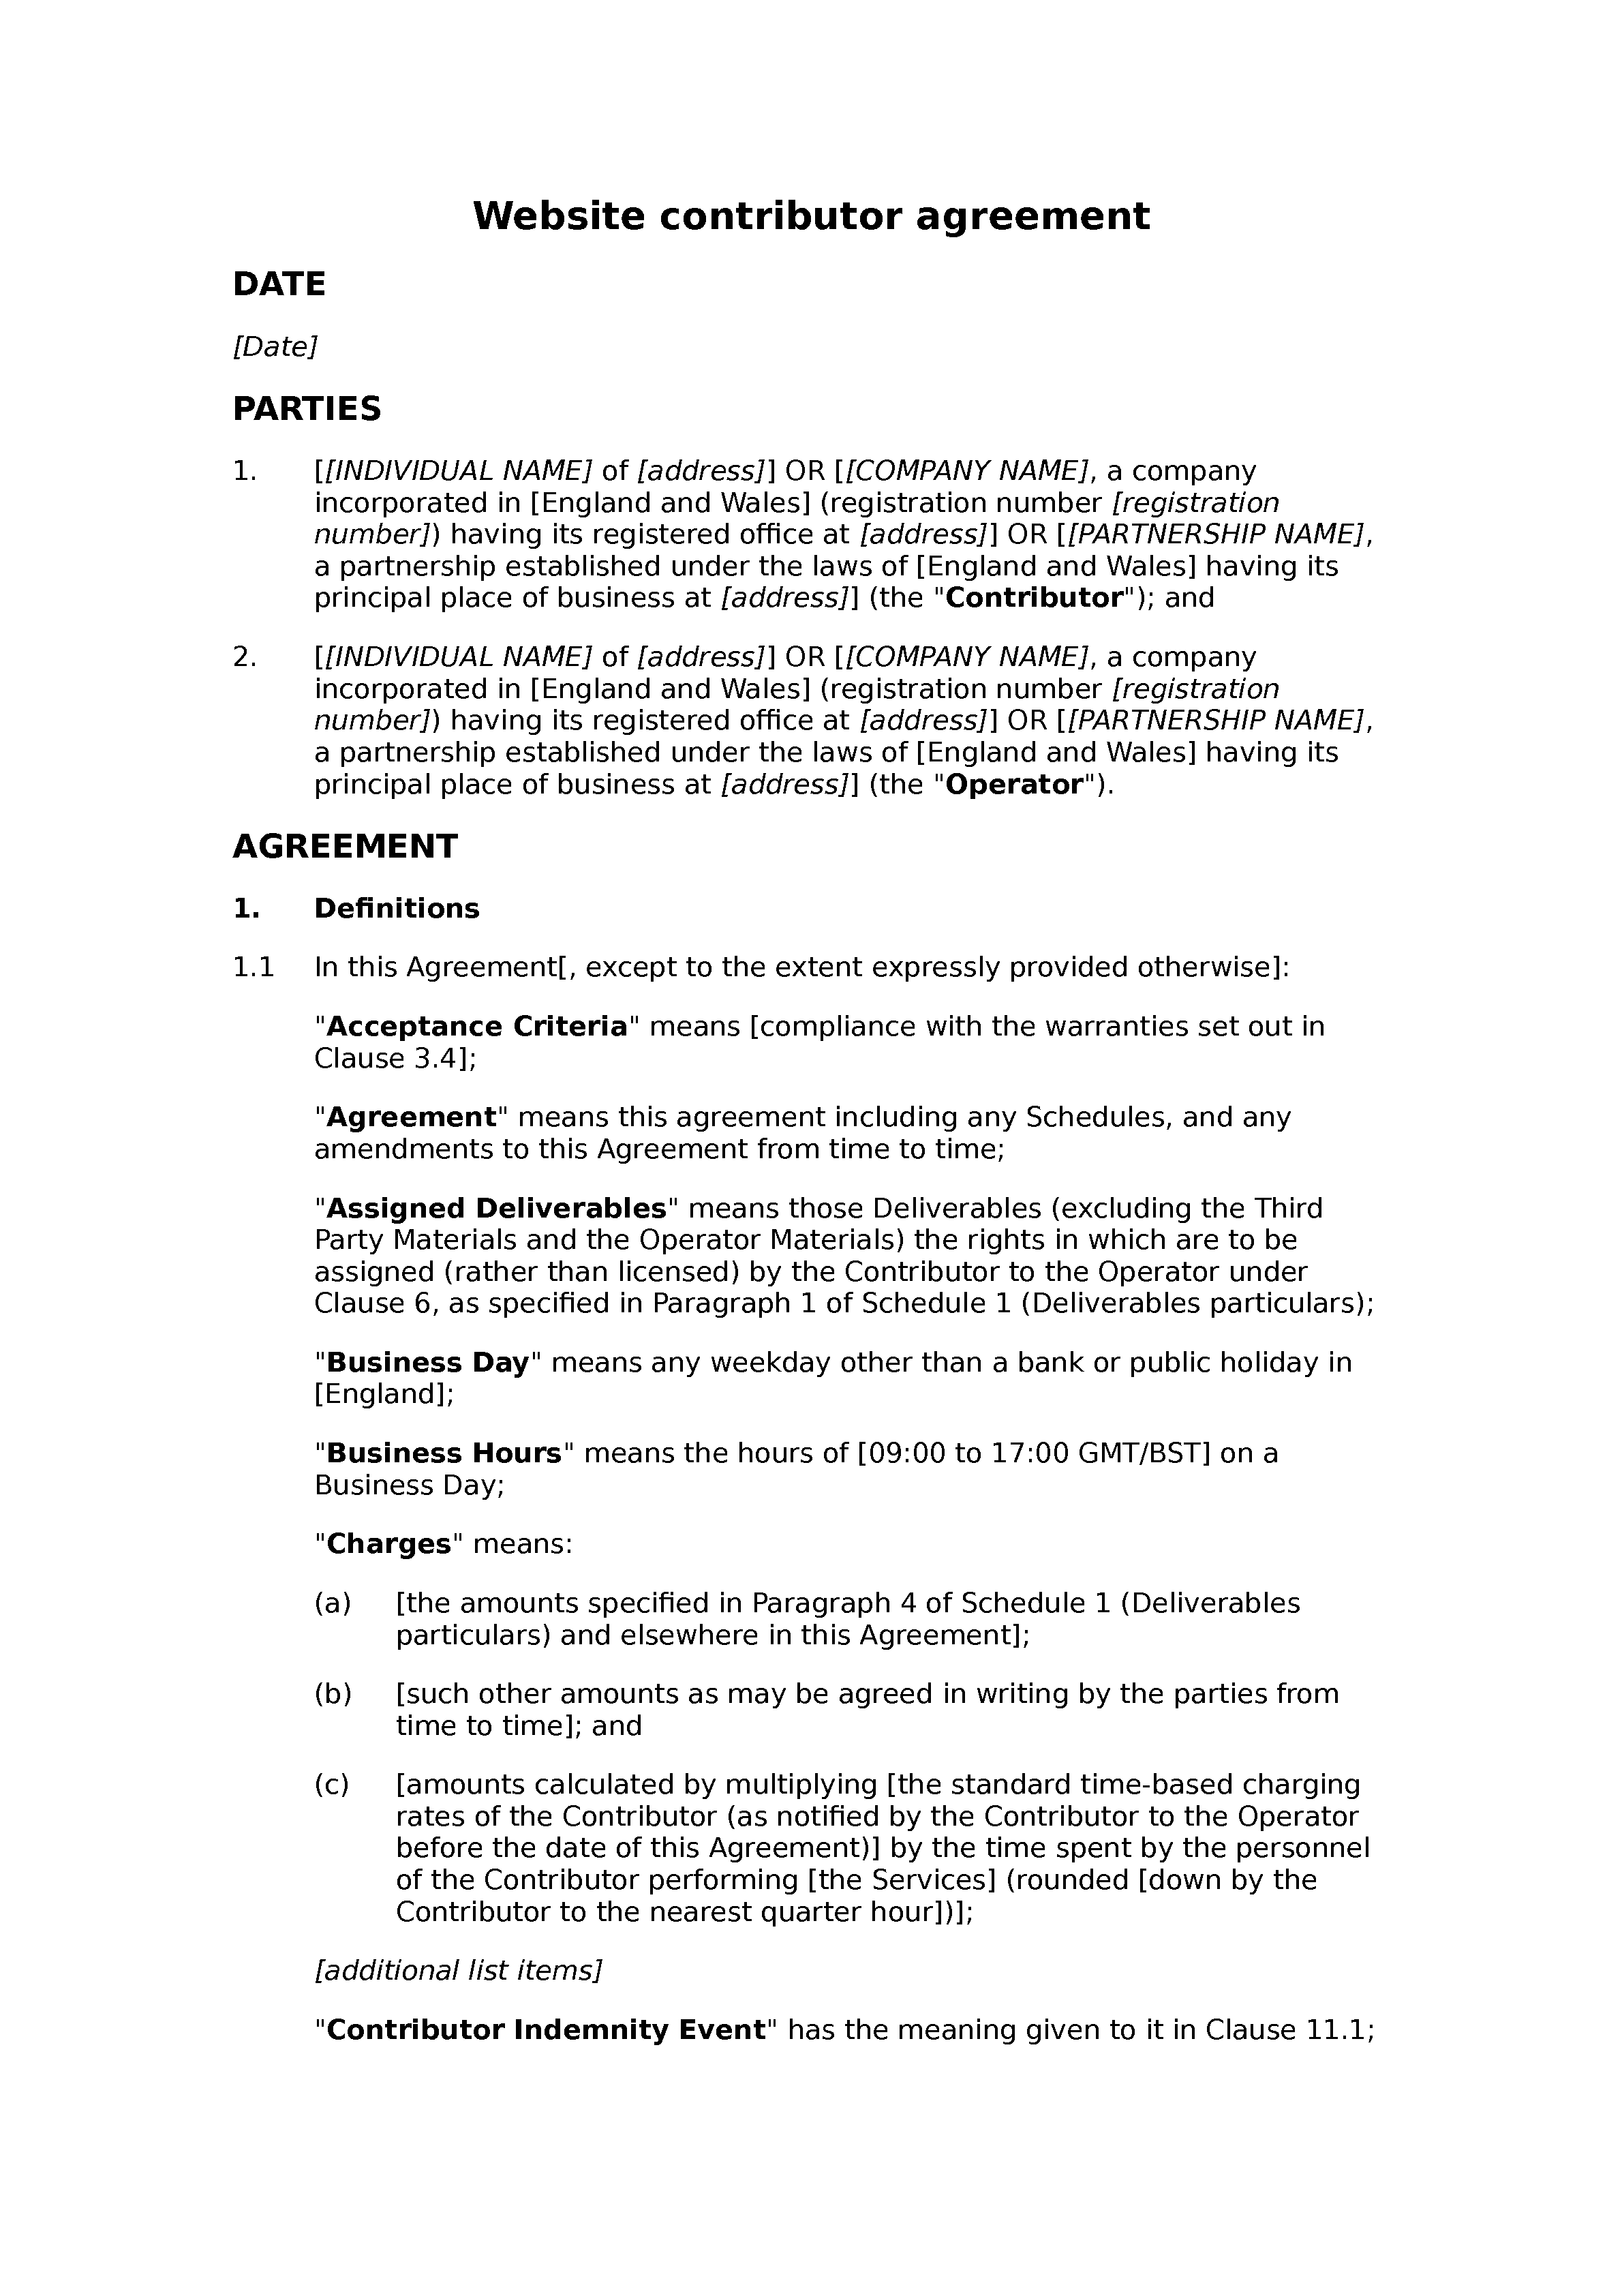 Website contributor agreement (paid) document preview